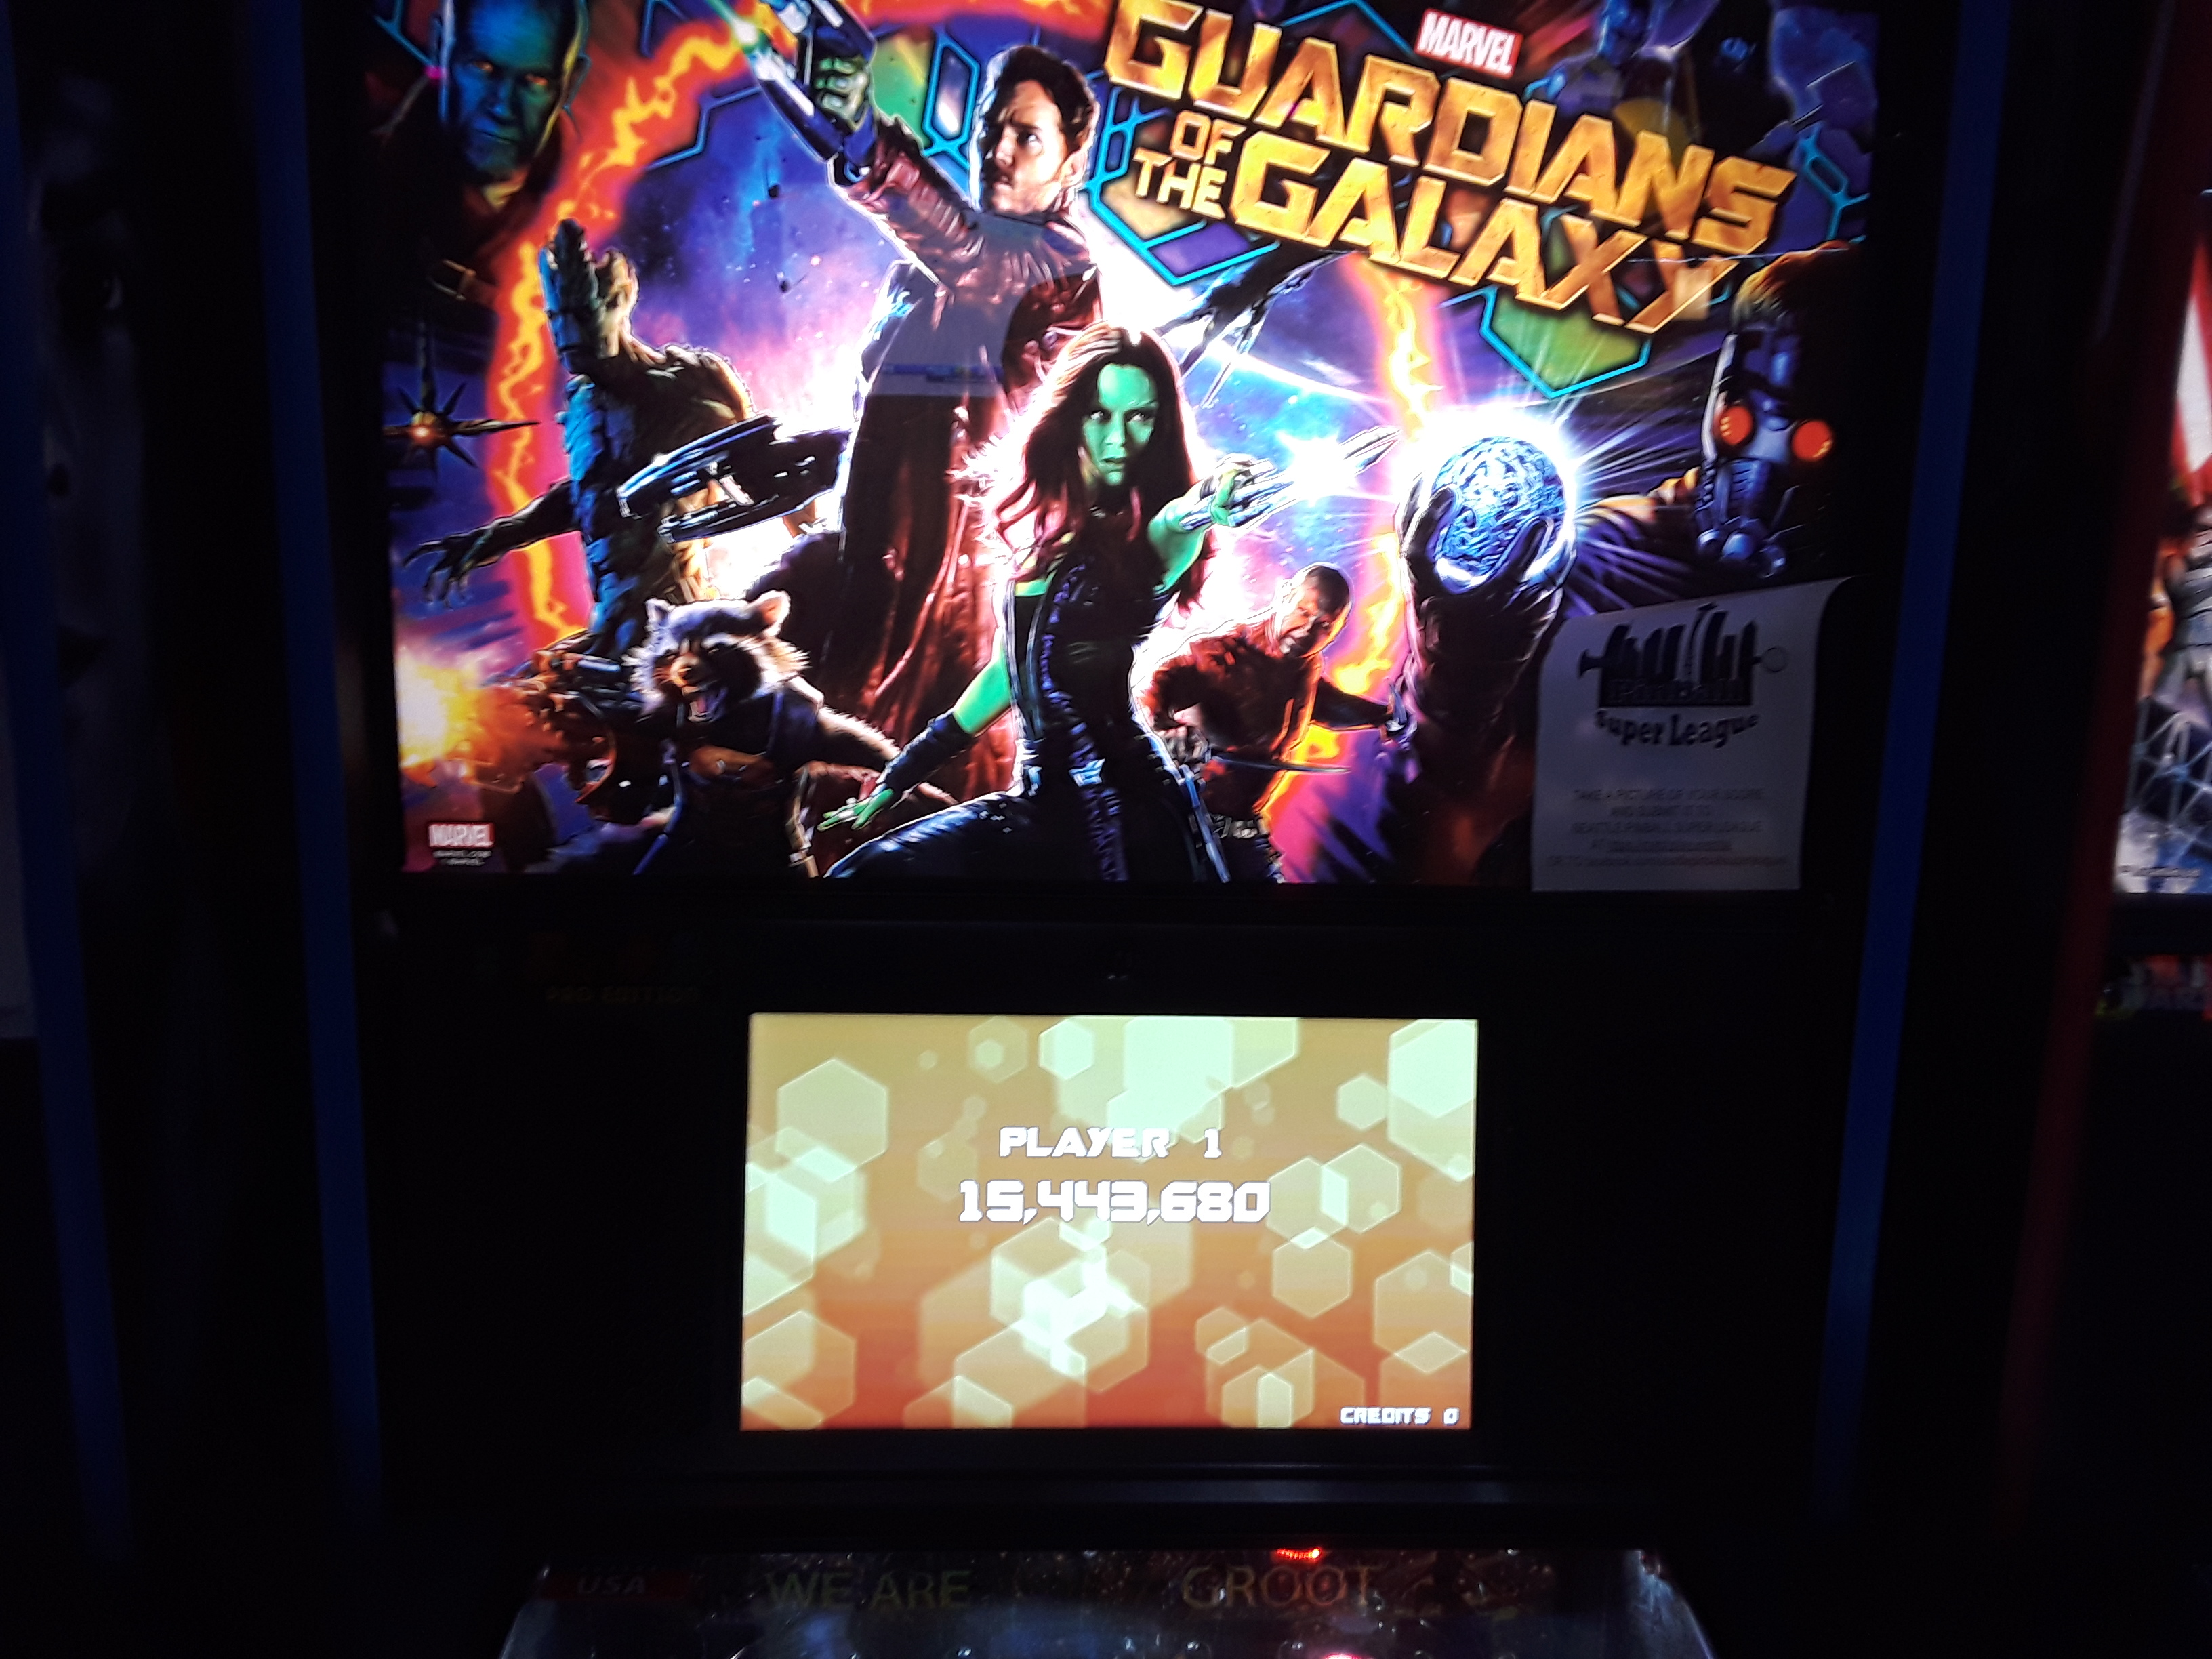 JML101582: Guardians Of The Galaxy (Pinball: 3 Balls) 15,443,680 points on 2018-08-18 19:05:10